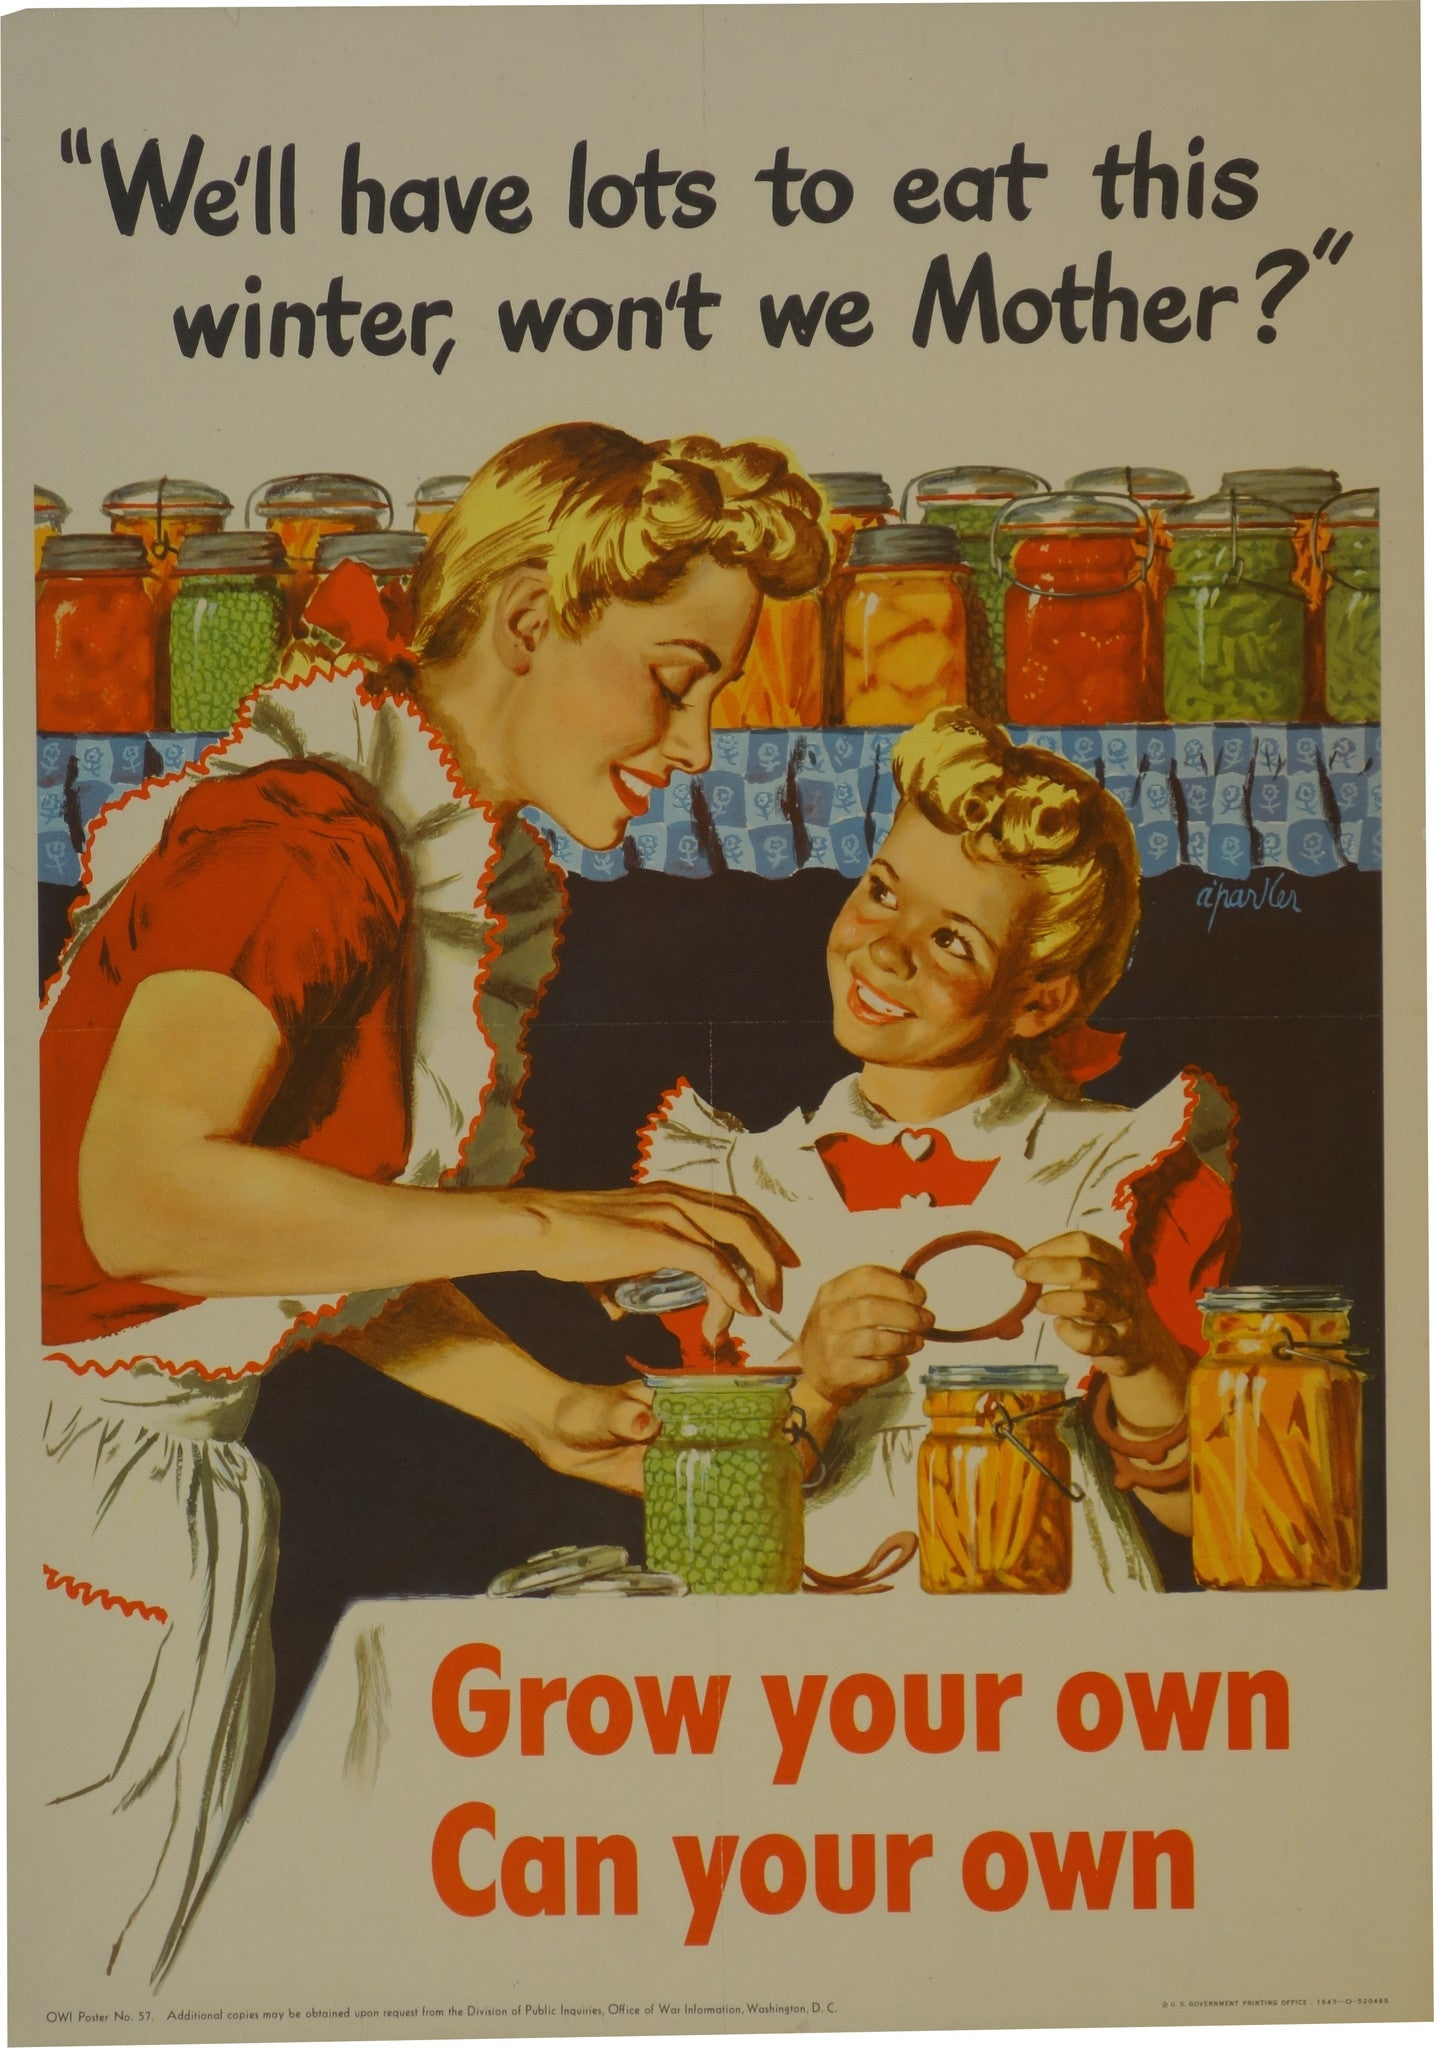 Grow your own, can your own